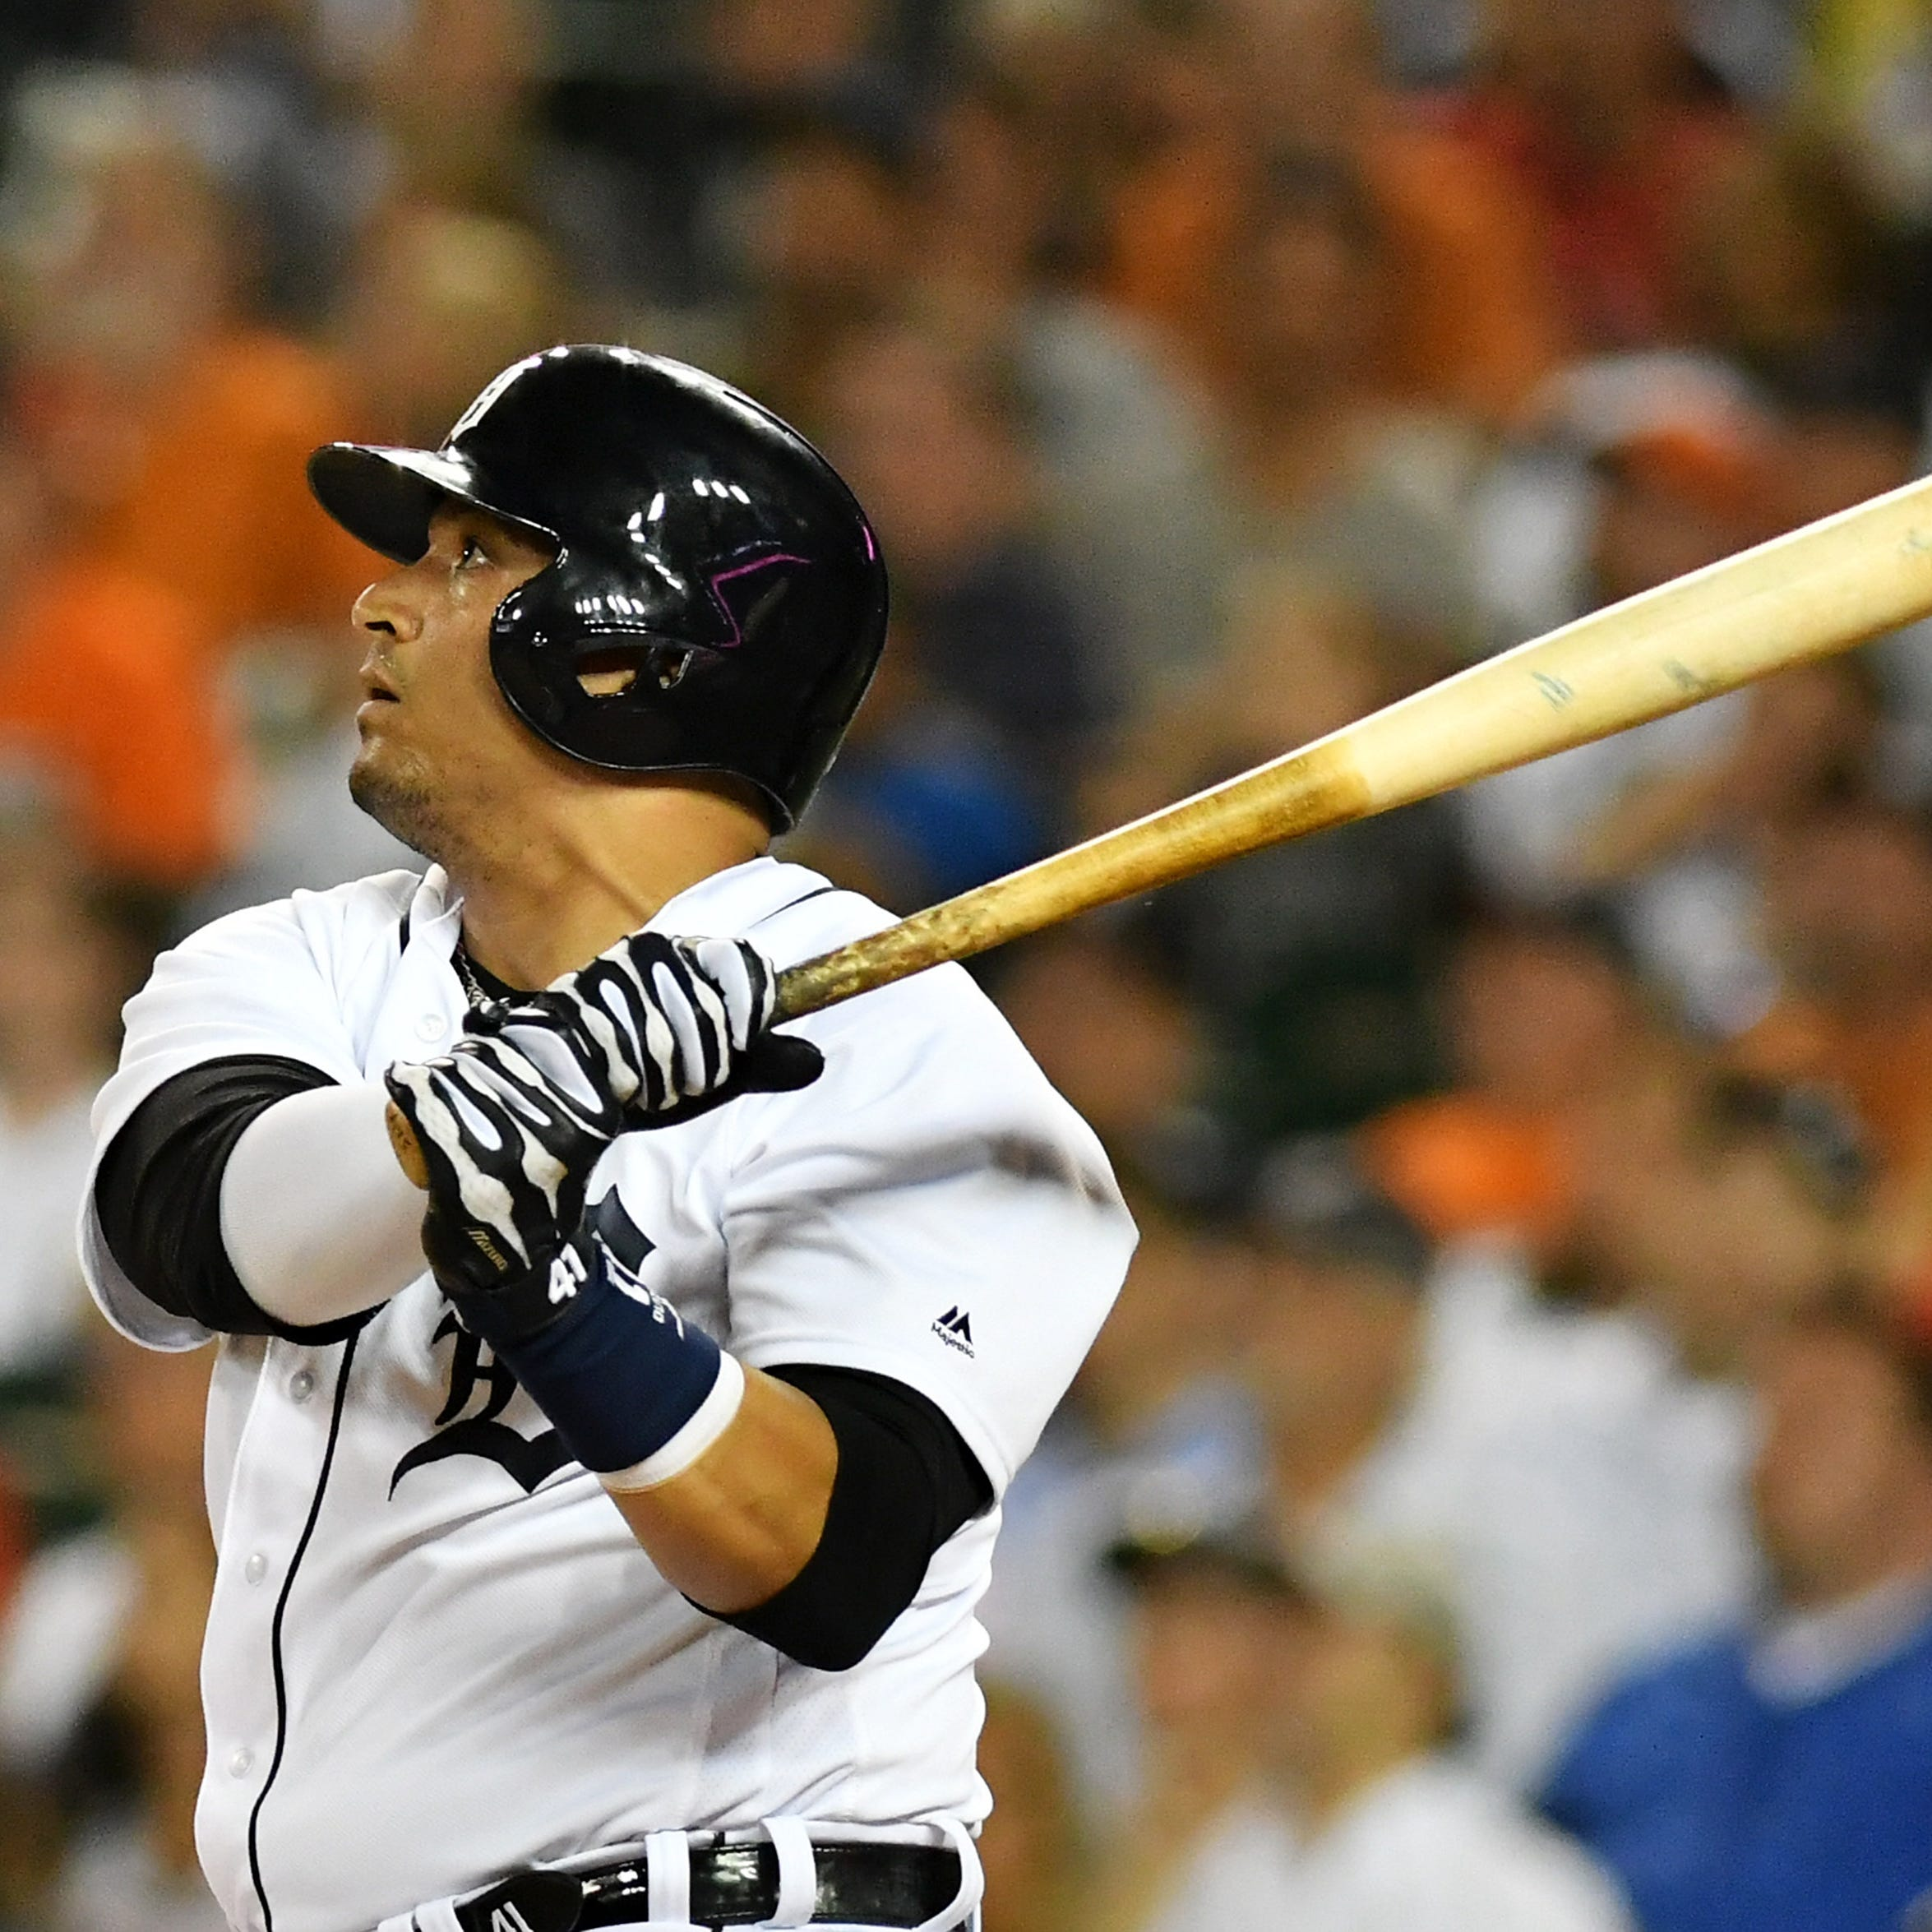 No World Series ring, but no regrets for Tigers' Victor Martinez